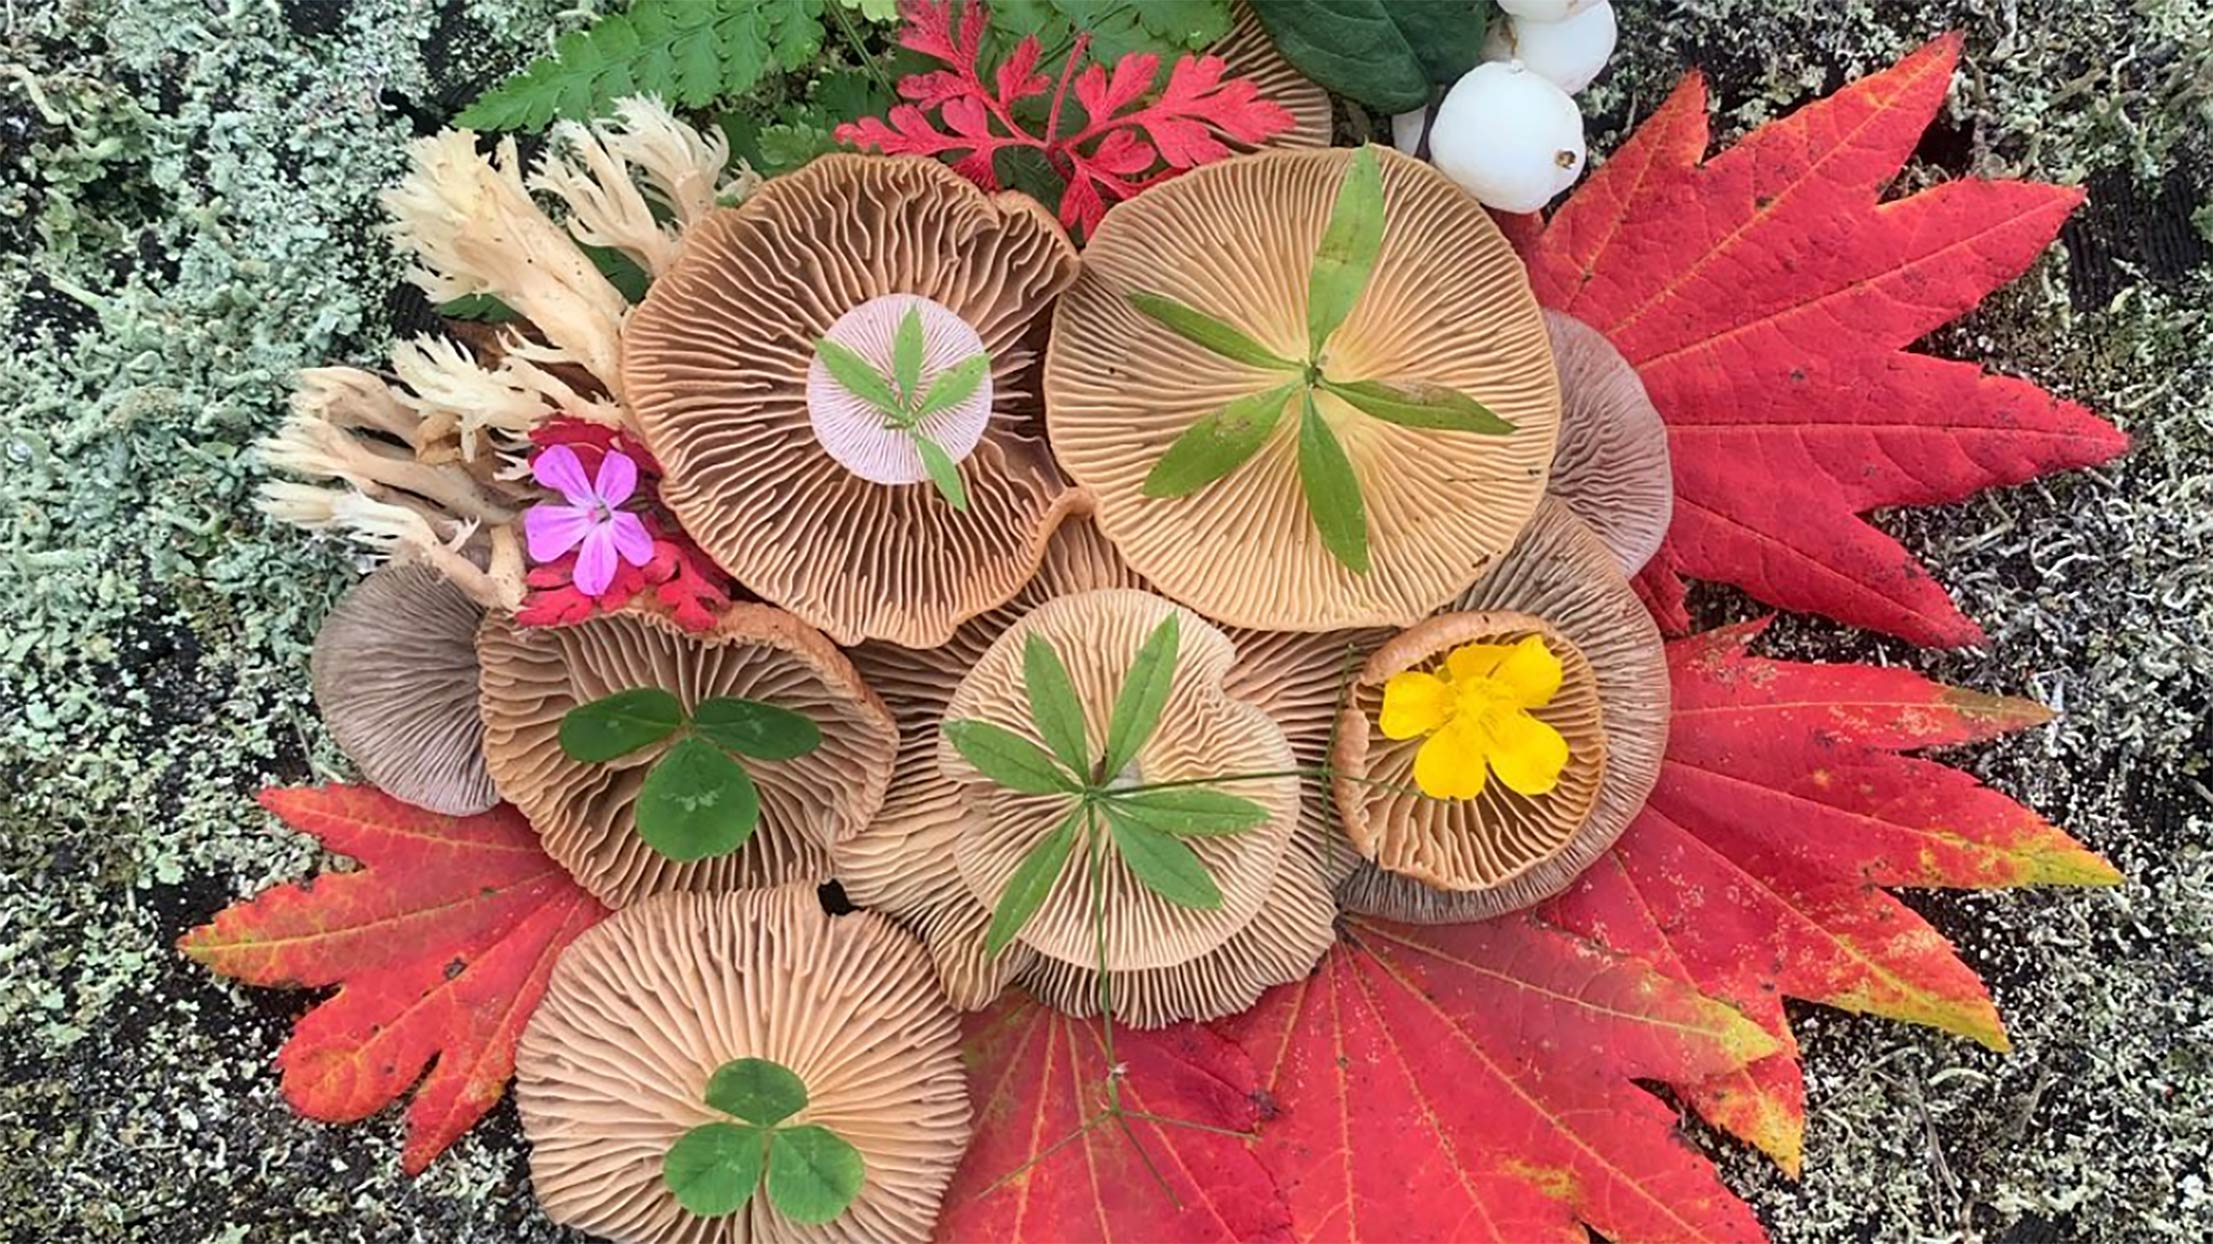 Mushrooms and leaves arranged in a pattern on forest floor